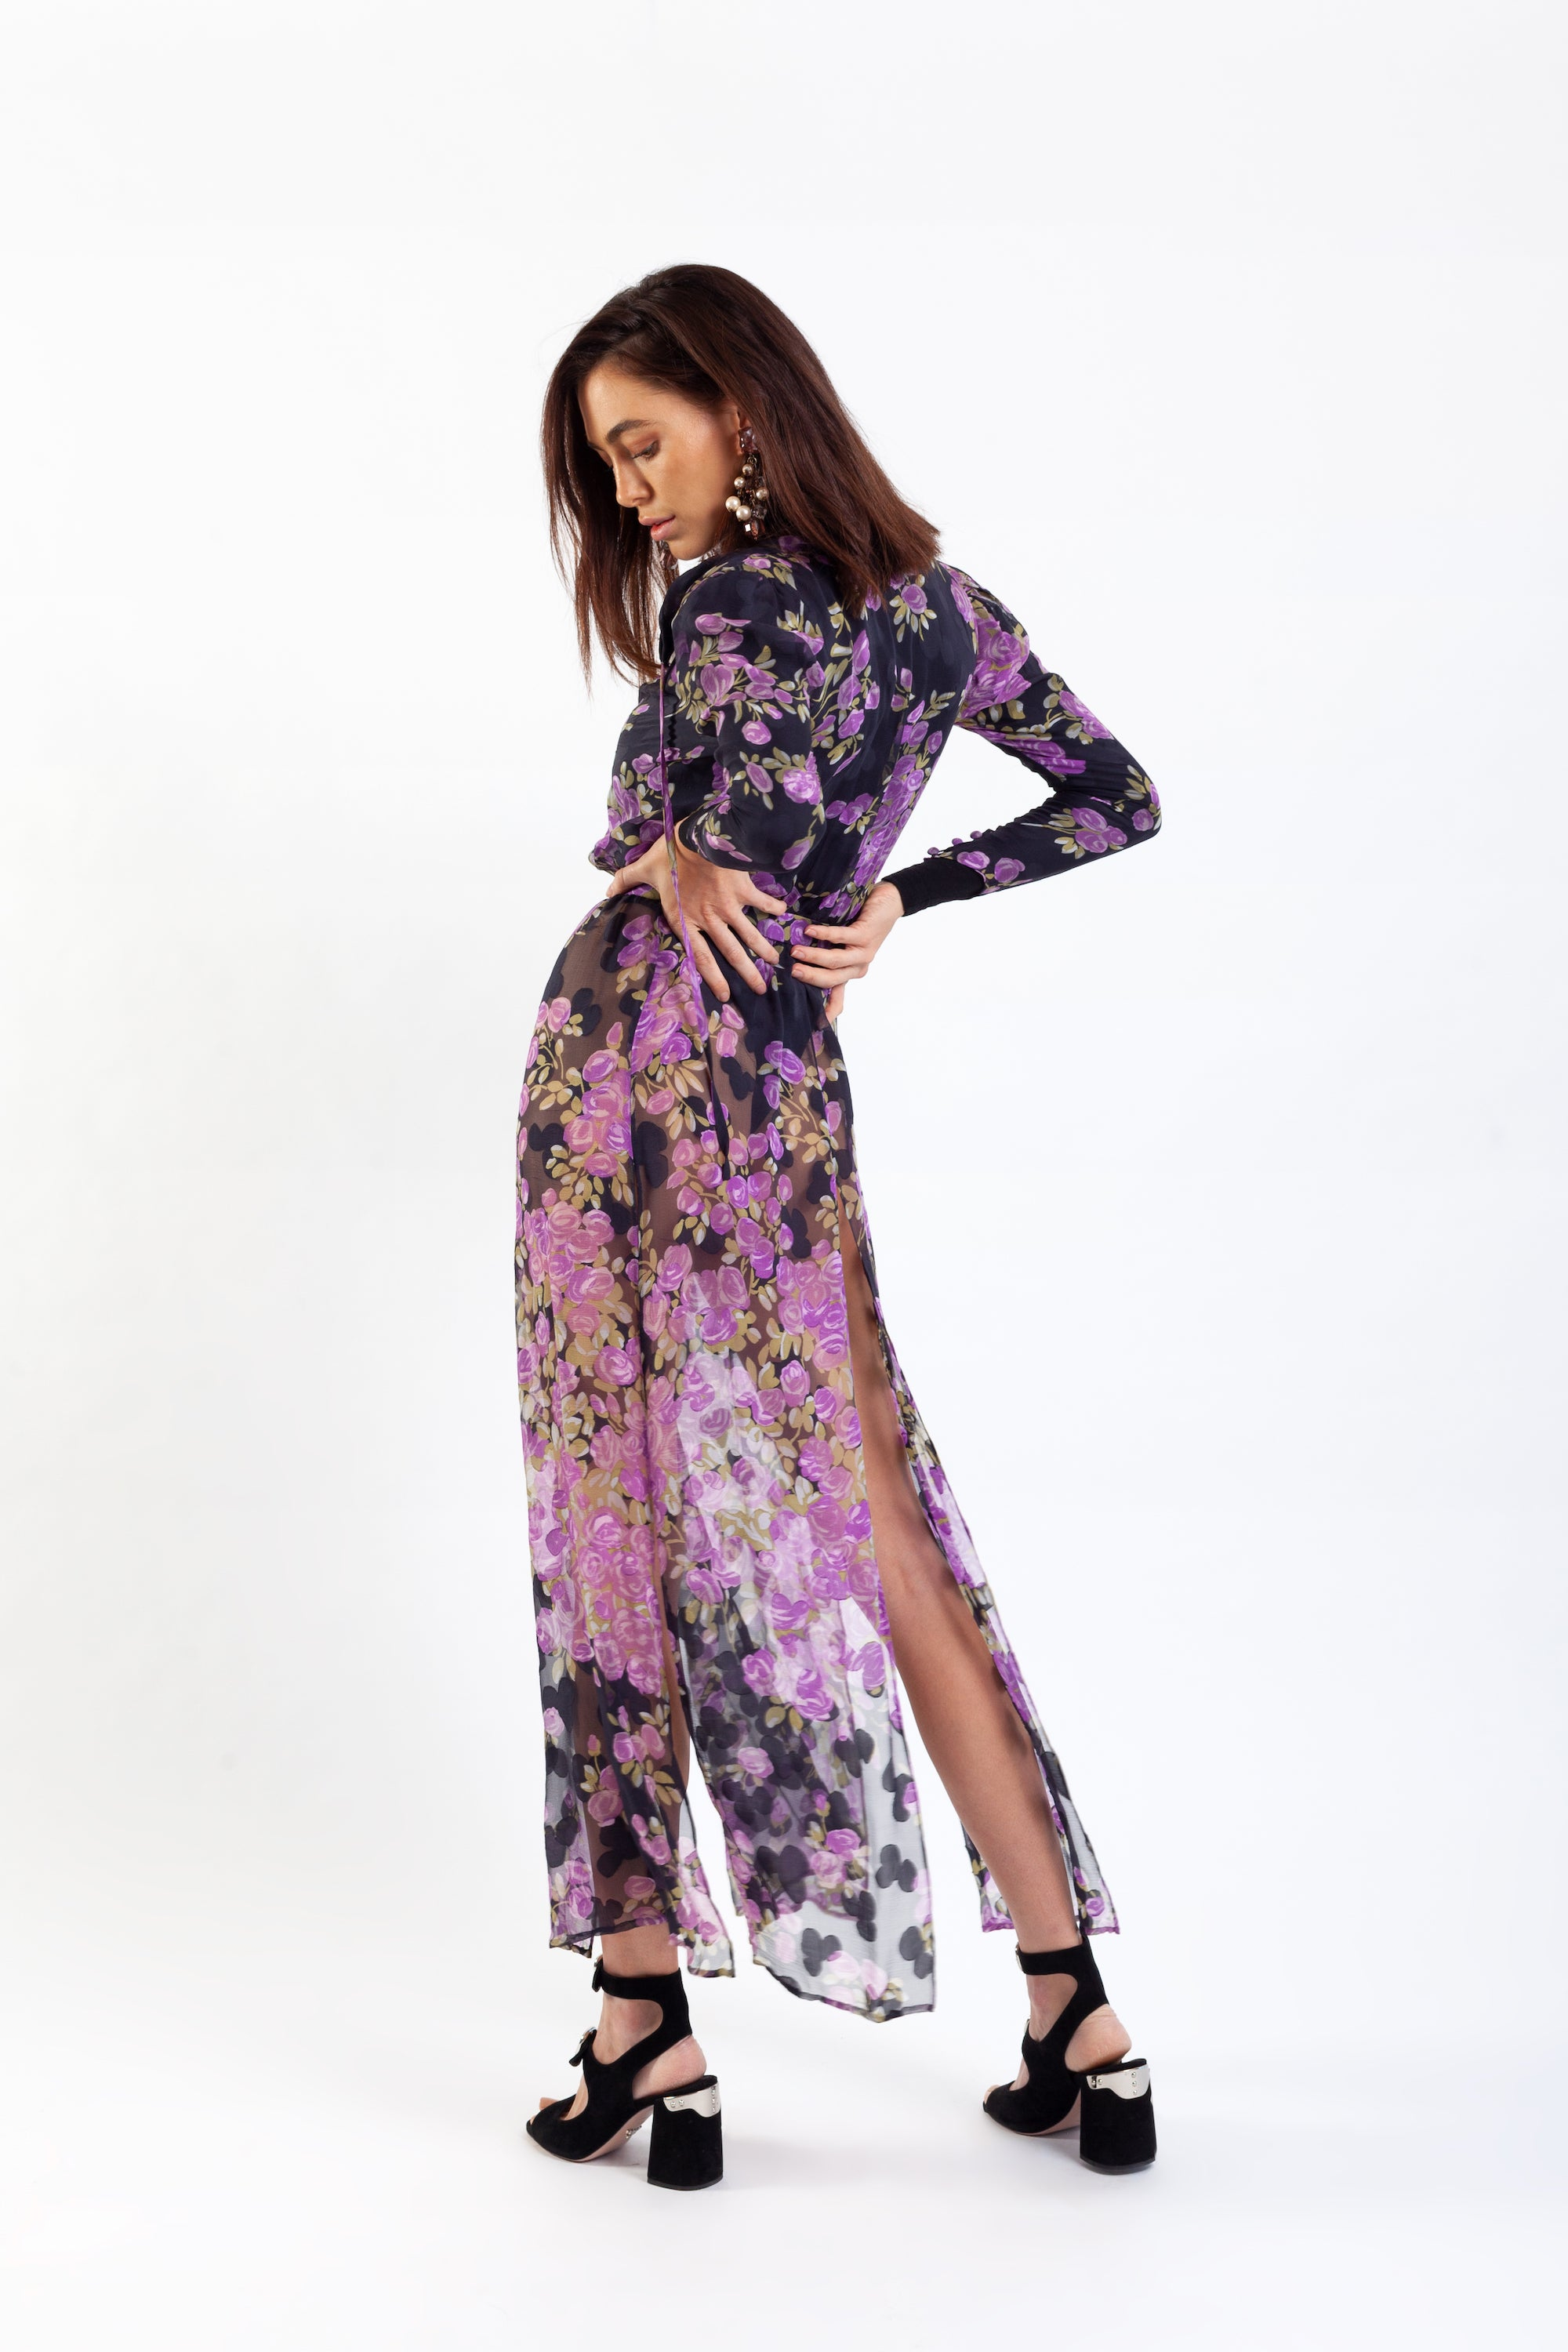 Yves Saint Laurent <br> Haute Couture 1970's floral print silk three piece ensemble